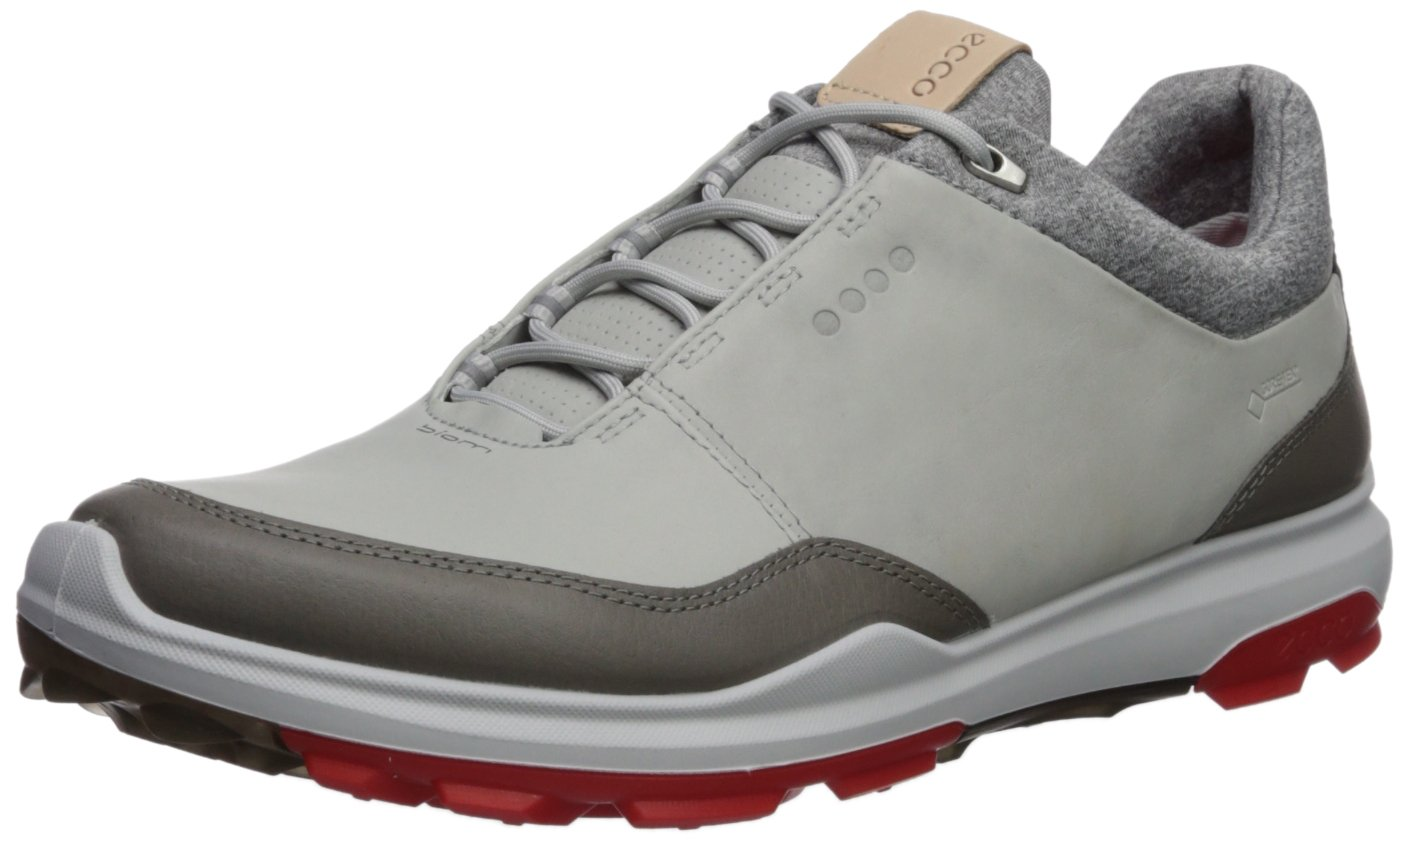 ECCO Men's Biom Hybrid 3 Gore-Tex Golf Shoe, Concrete/Scarlet, 39 M EU (5-5.5 US)